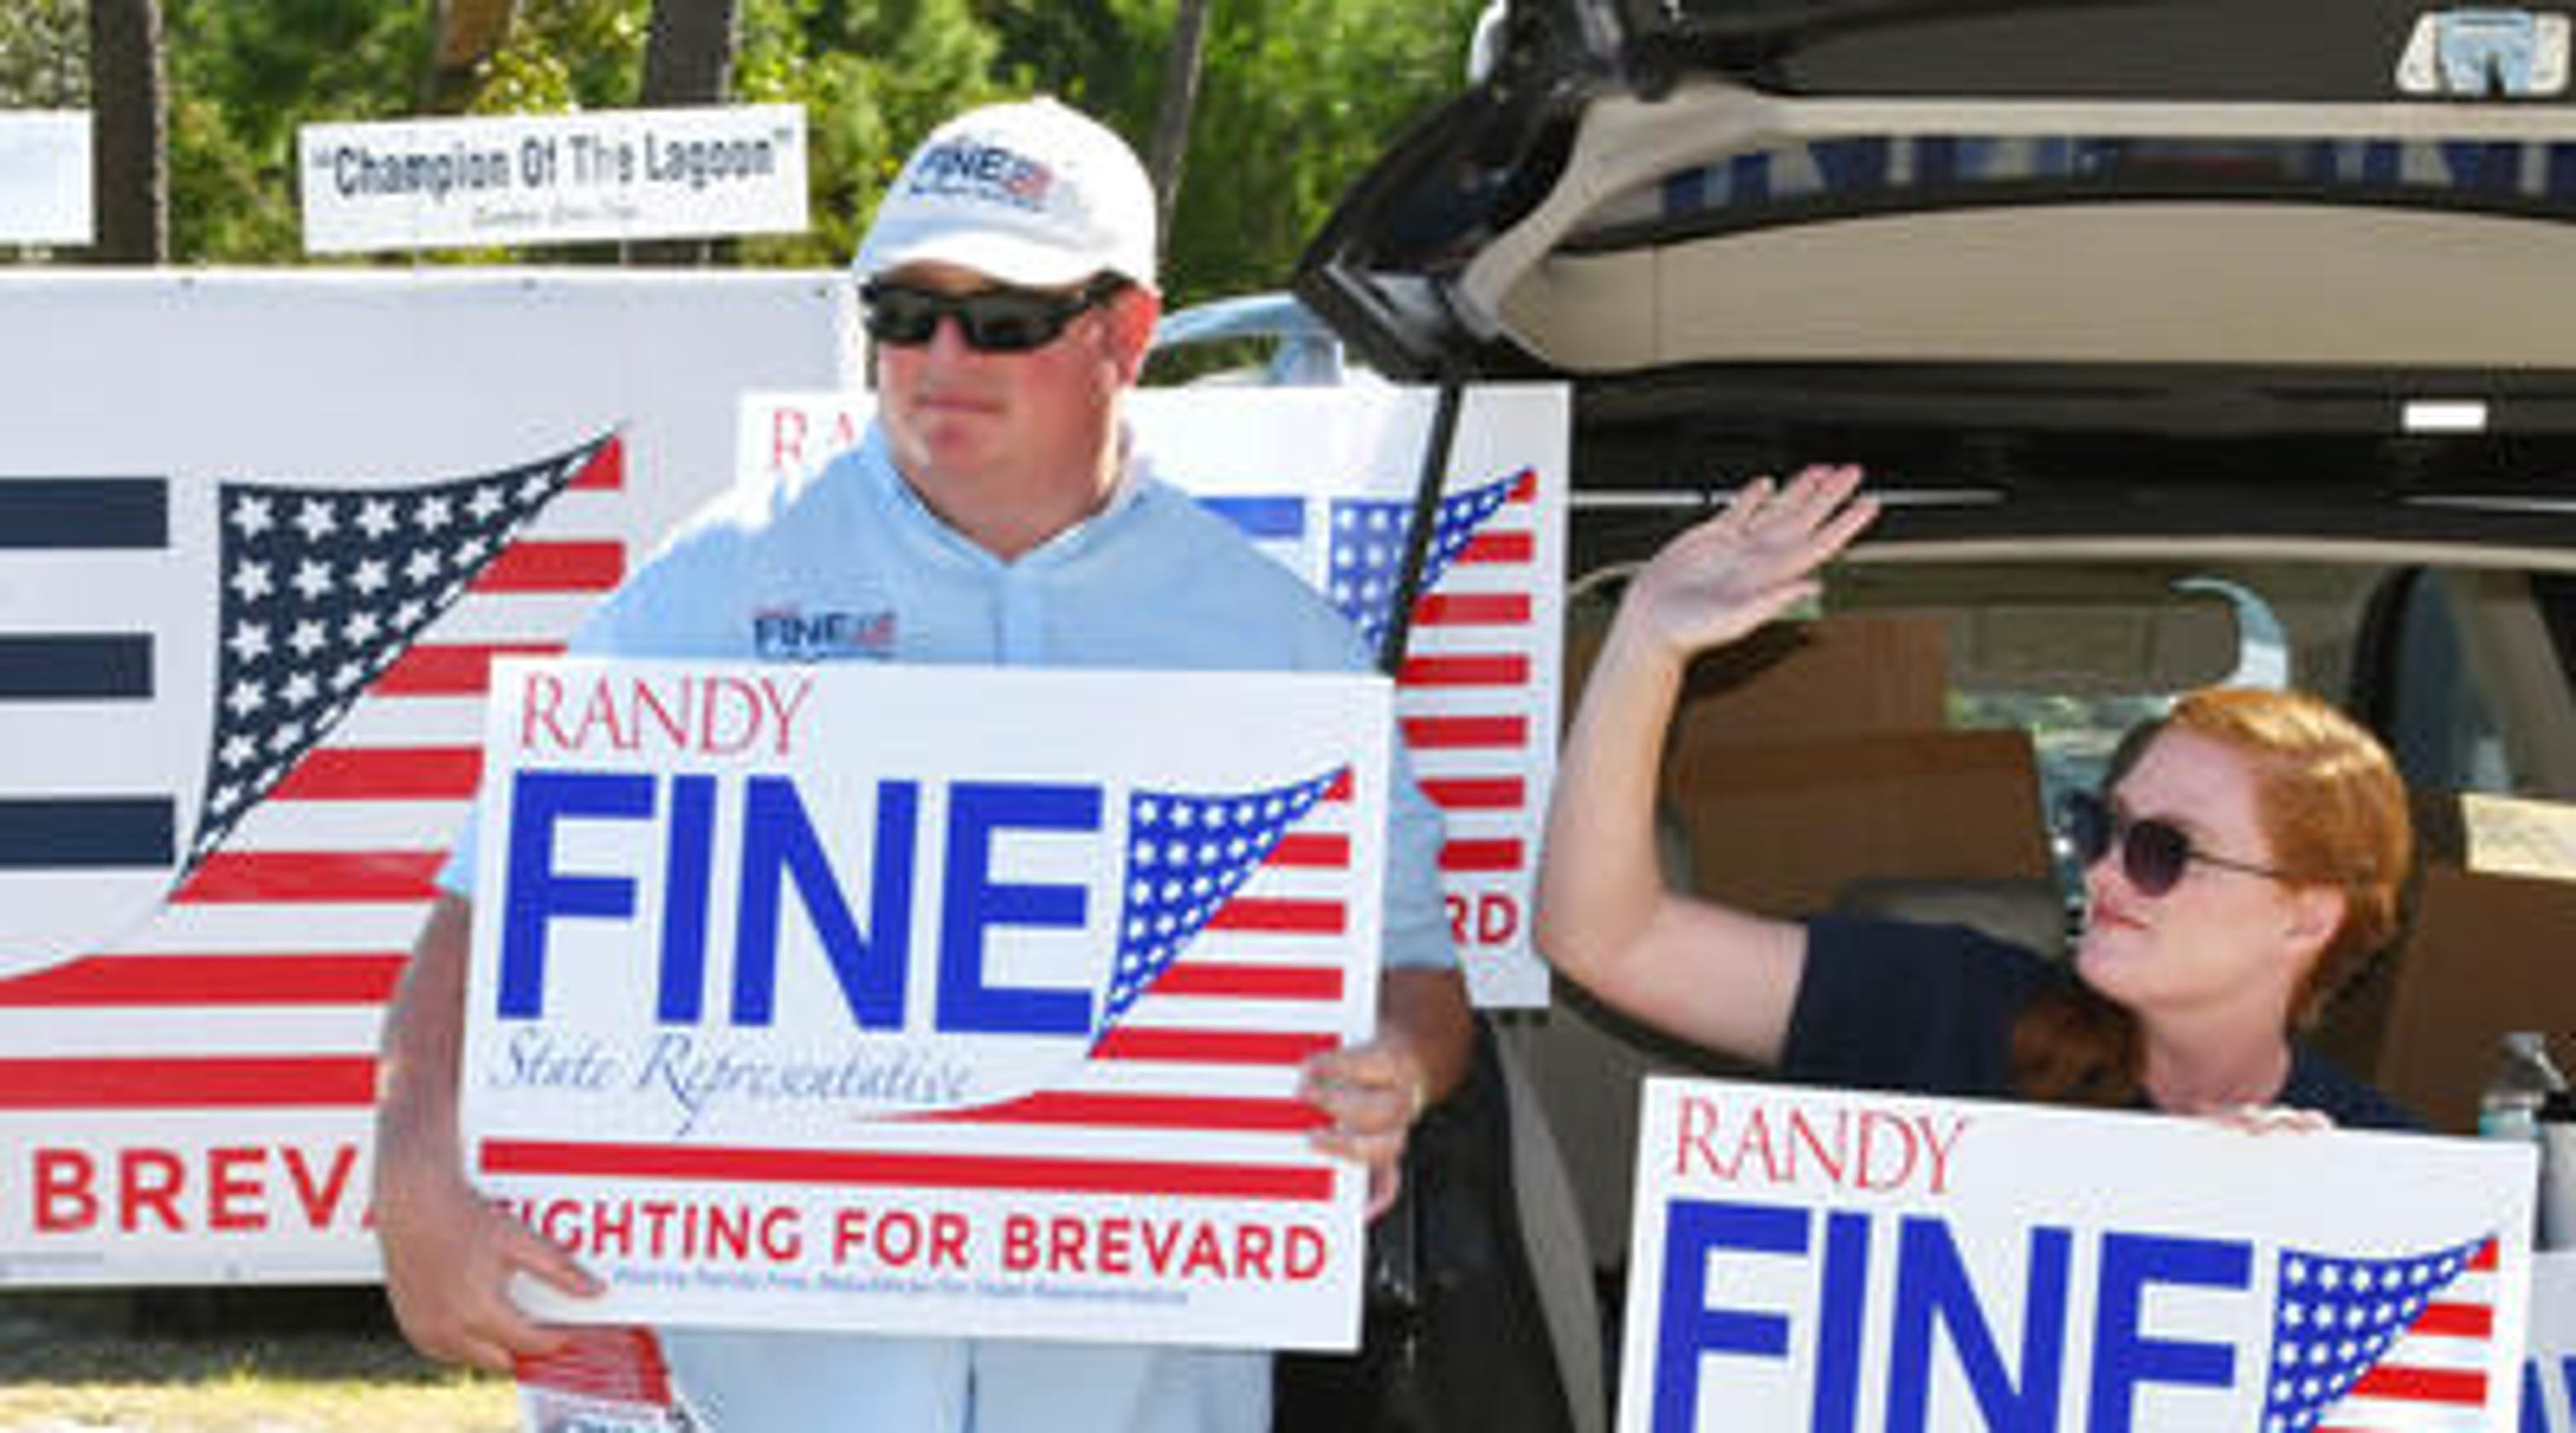 f9d20a932d8 Randy Fine s aggressive style overshadows everything in District 53 House  races